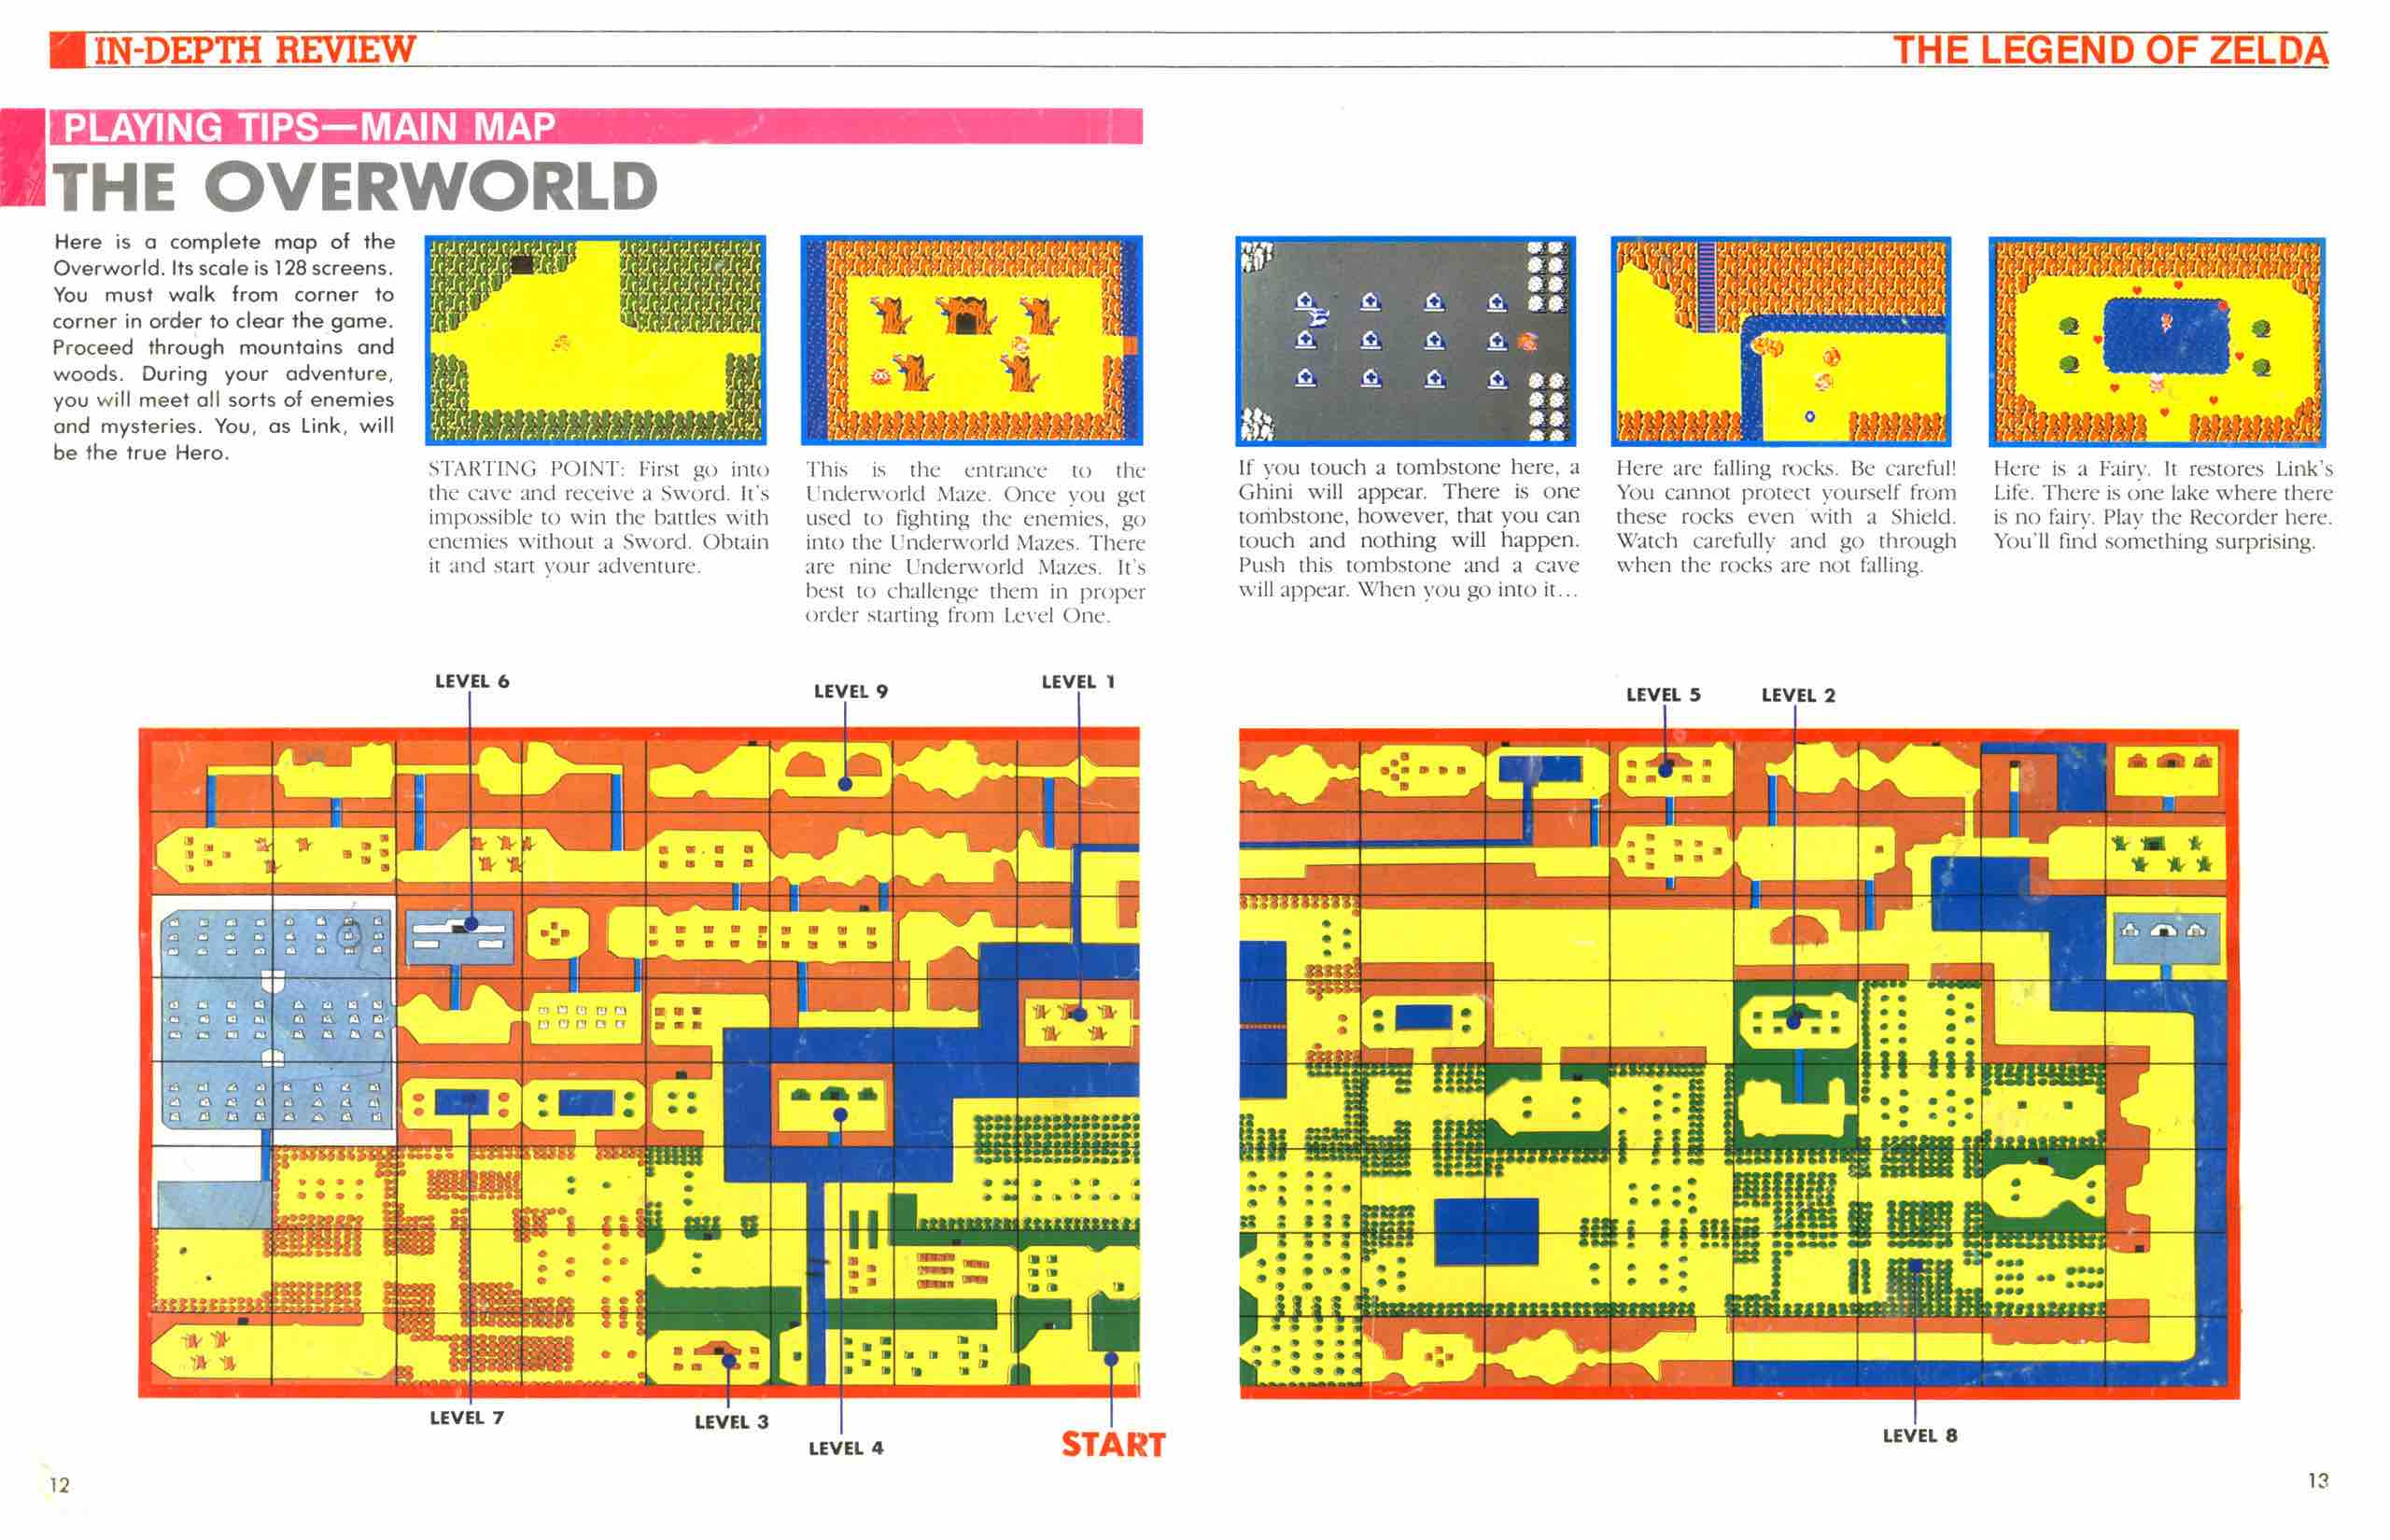 Official Nintendo Player's Guide Pg 12-13